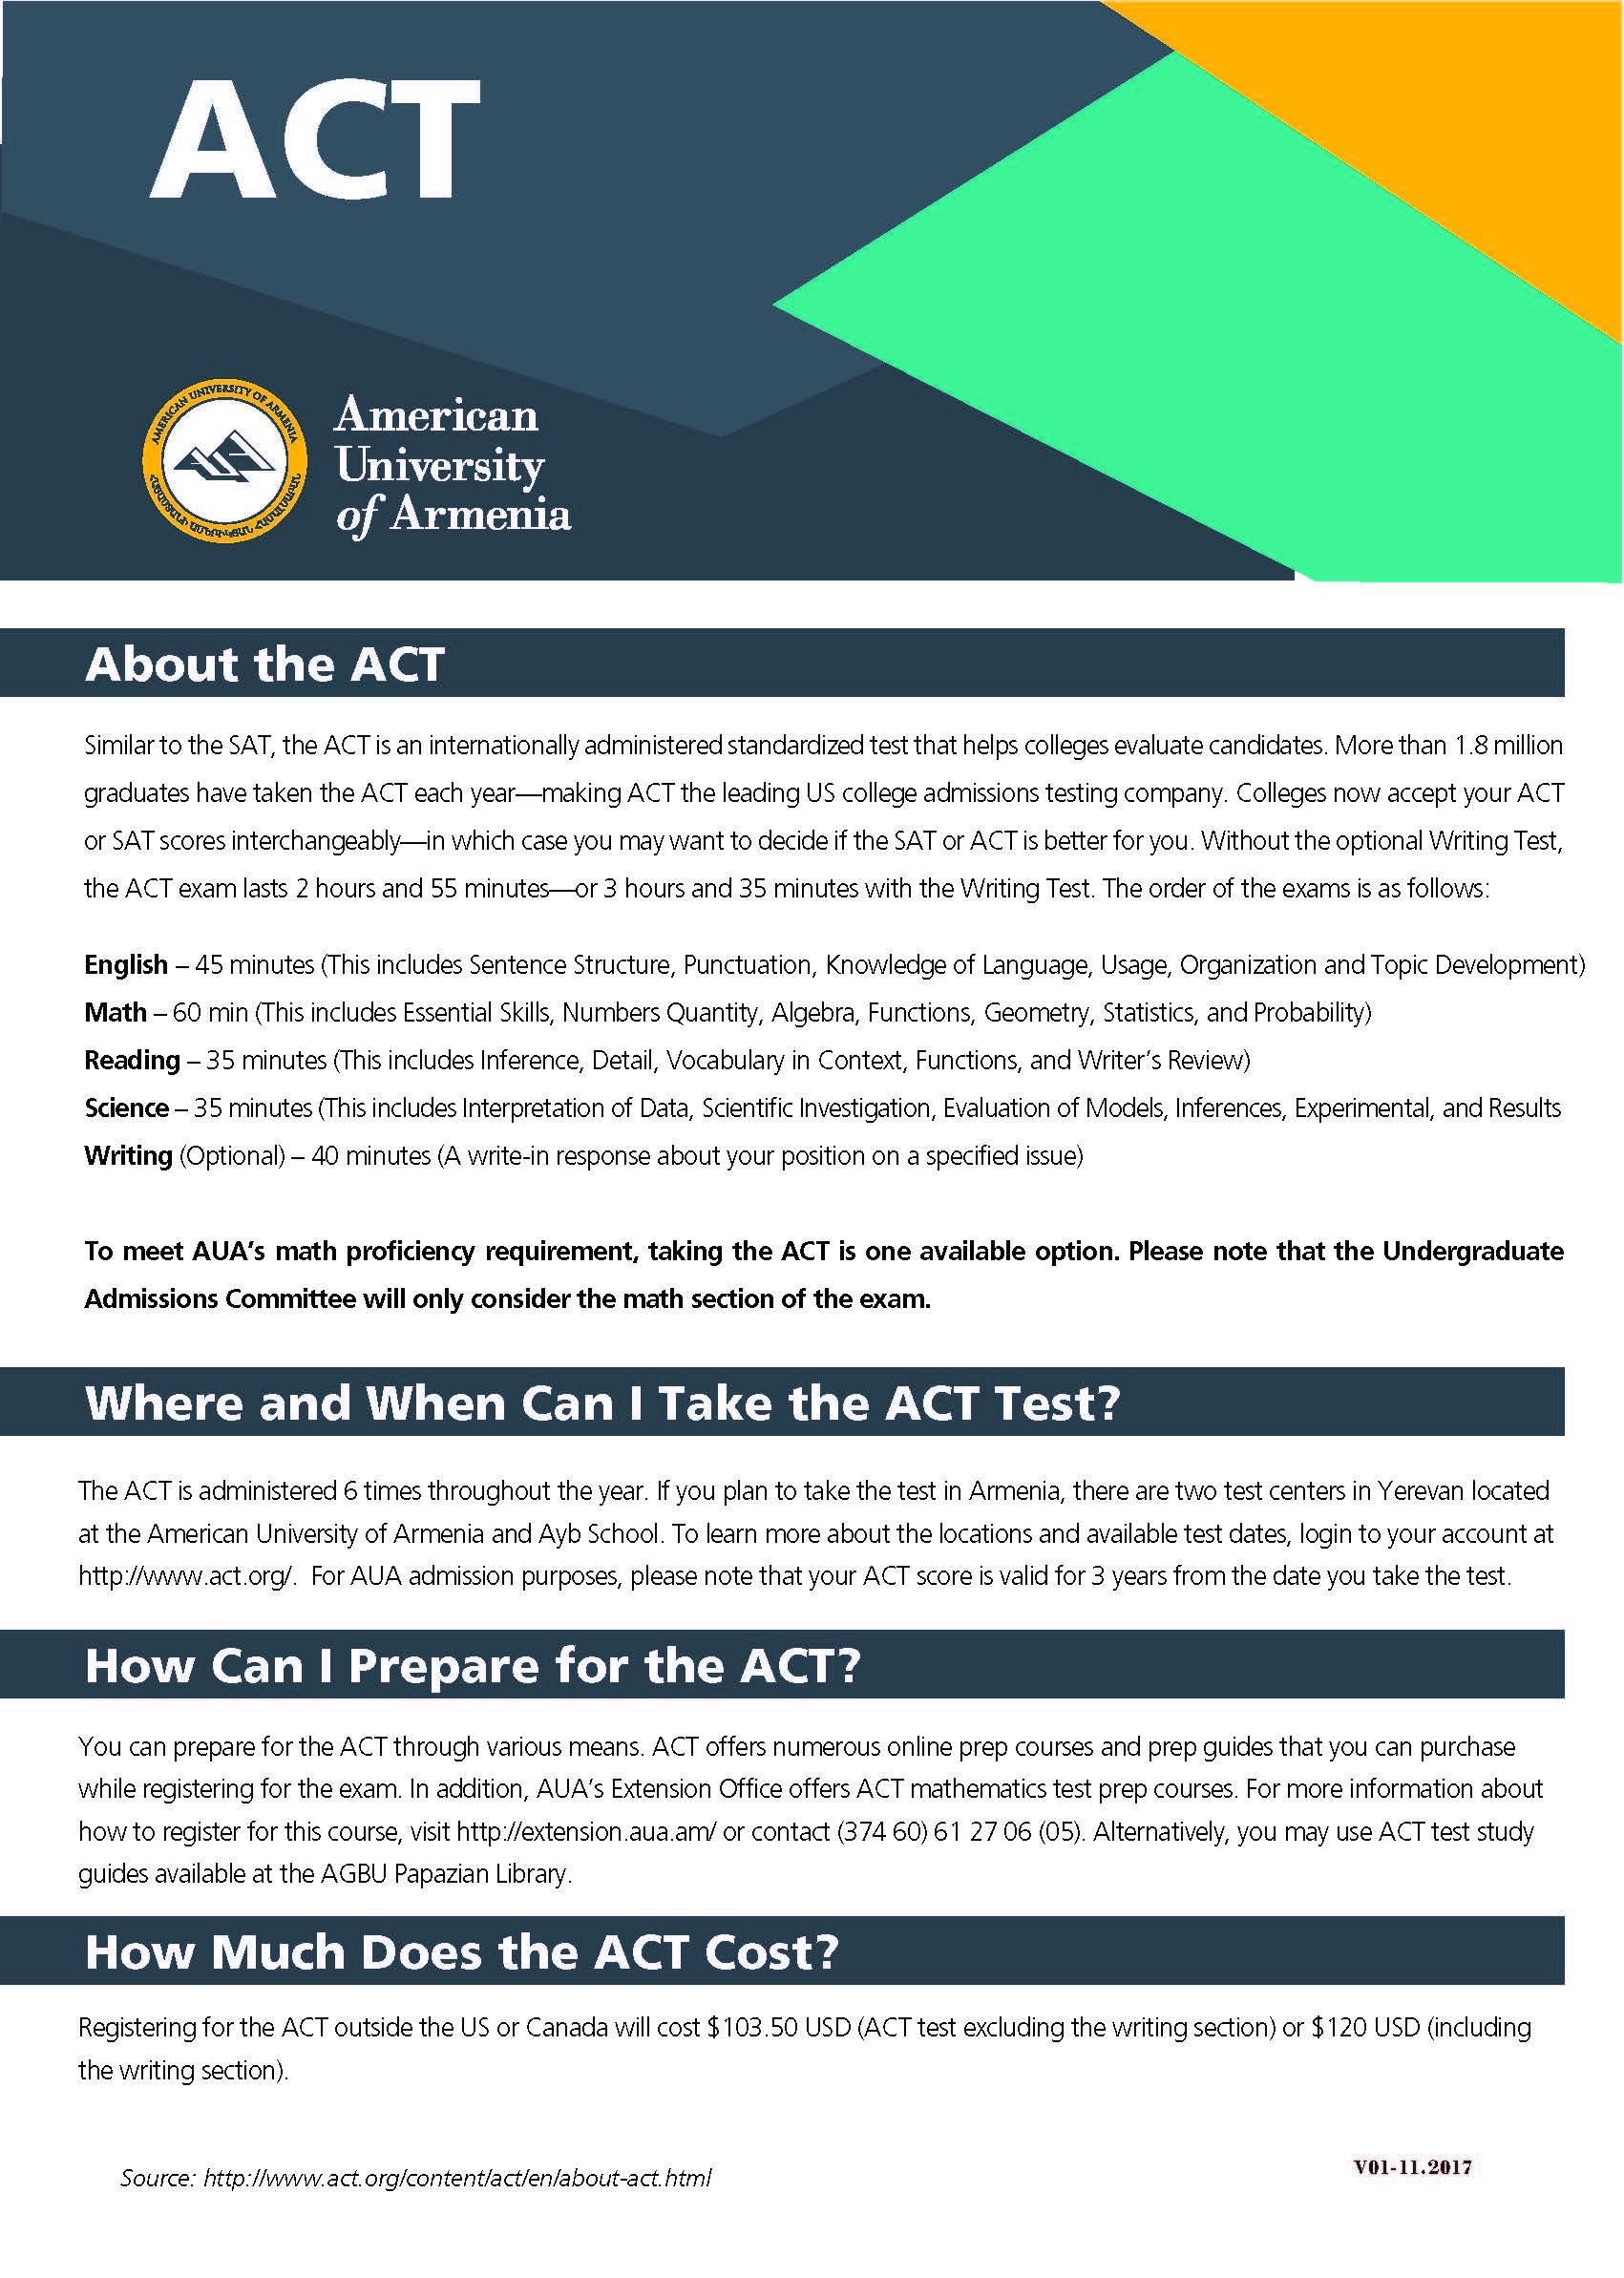 act writing section Recently, the act writing section underwent some changes, and is now designed to test your ability to communicate in writing by analyzing different perspectives, expressing your own perspective, and composing a clear and organized essay.